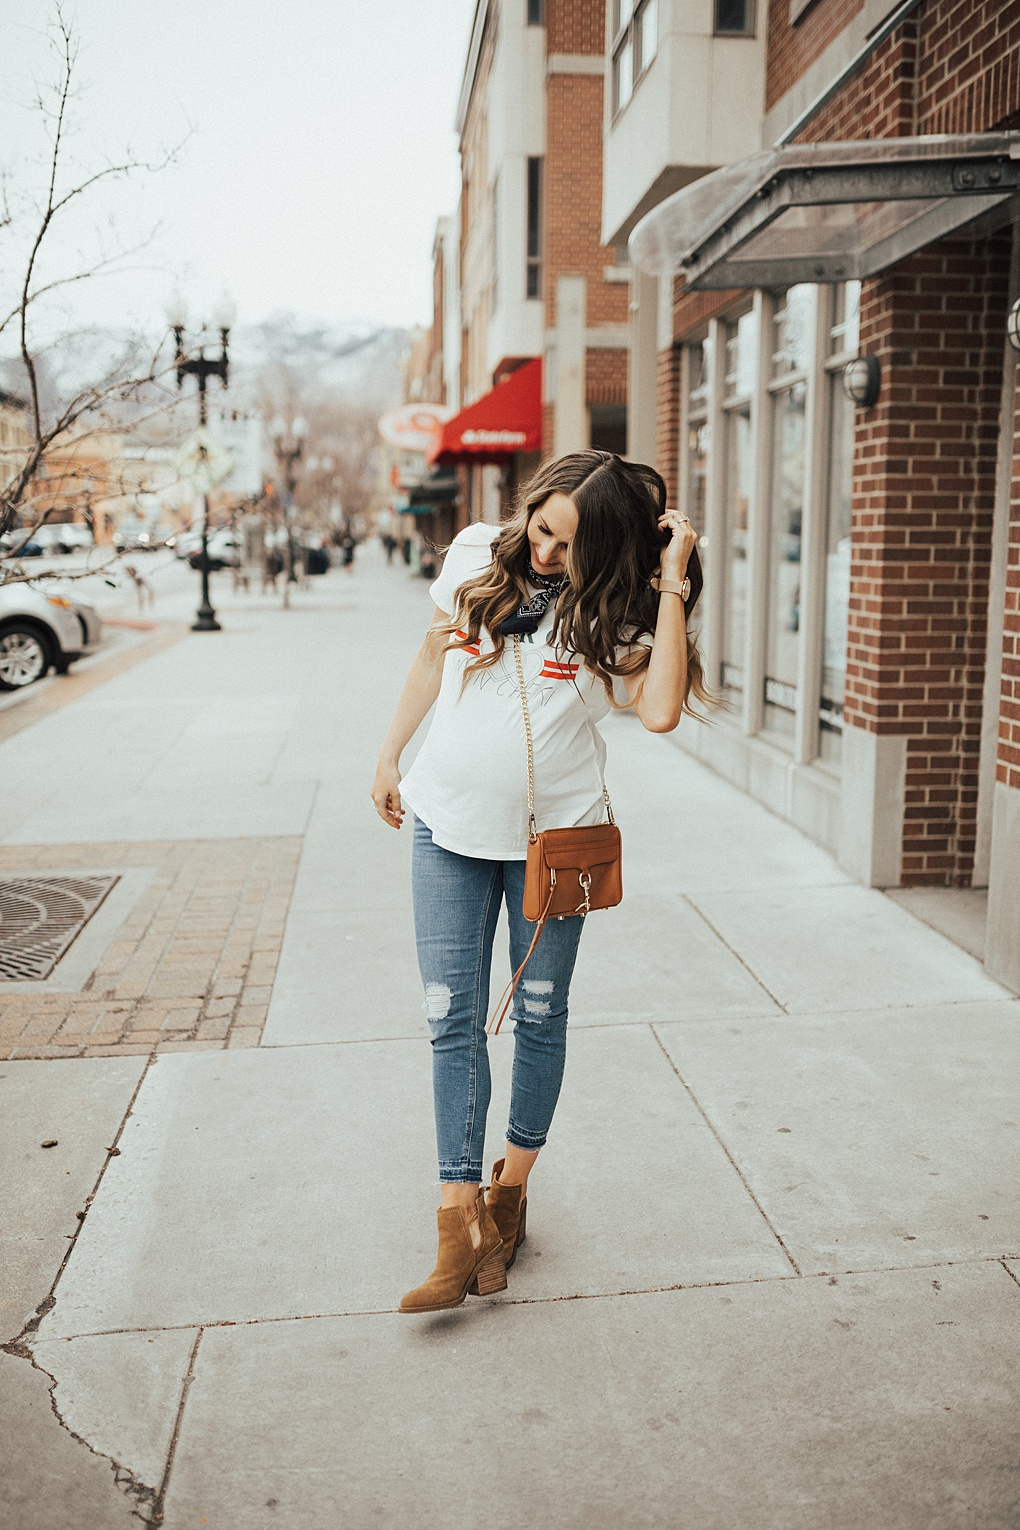 Ladies, need help figuring out the best shoe trends this year? See how Utah Style Blogger Dani Marie styles her favorite spring and summer shoe trends.